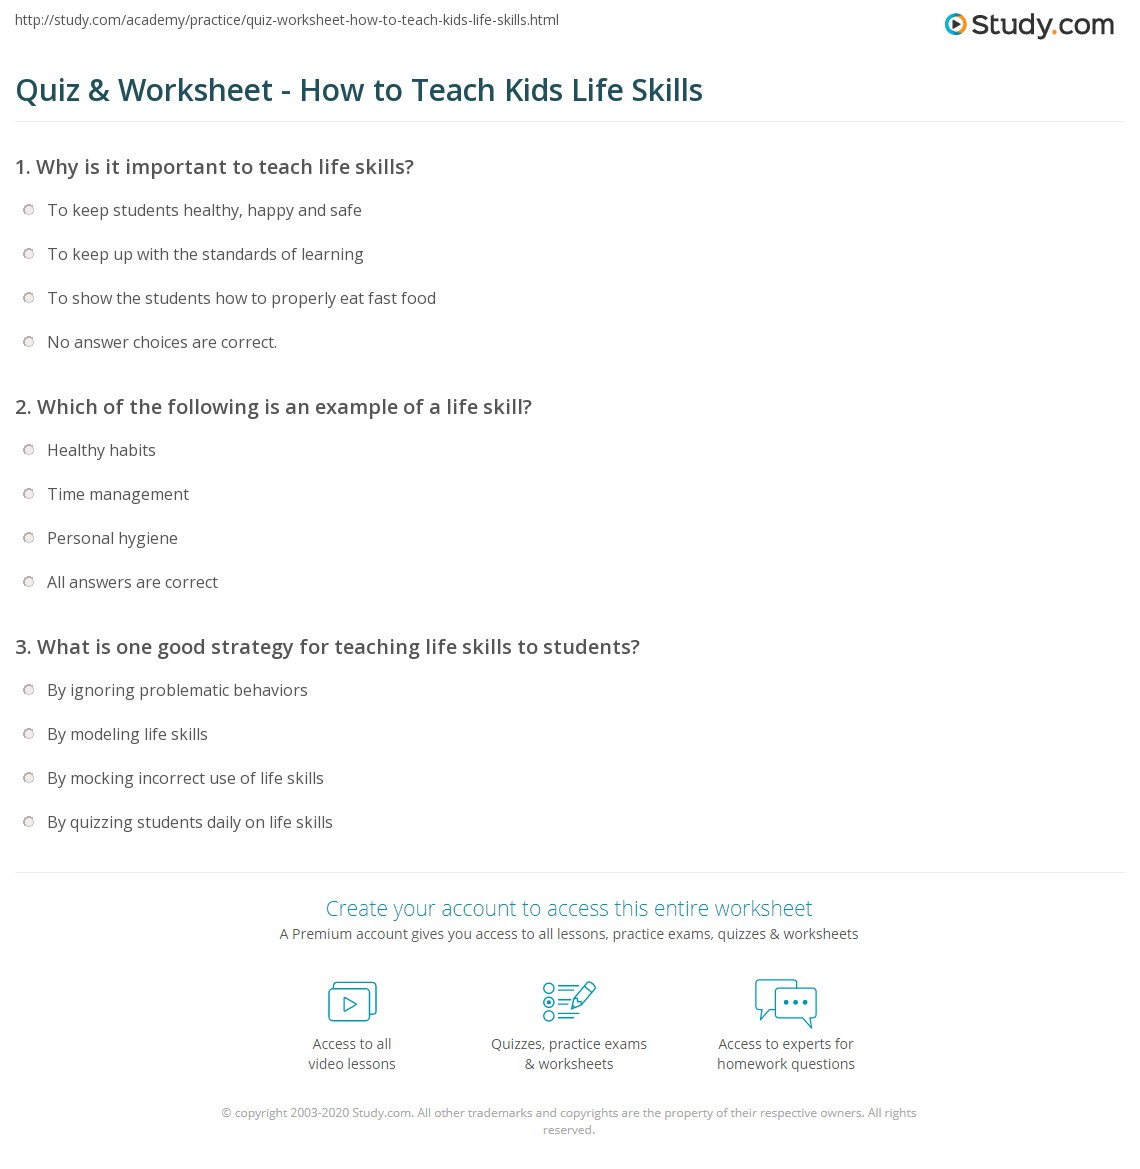 Free Worksheet Life Skills Math Worksheets worksheet 553420 life skills math worksheets quiz and how to teach kids worksheets